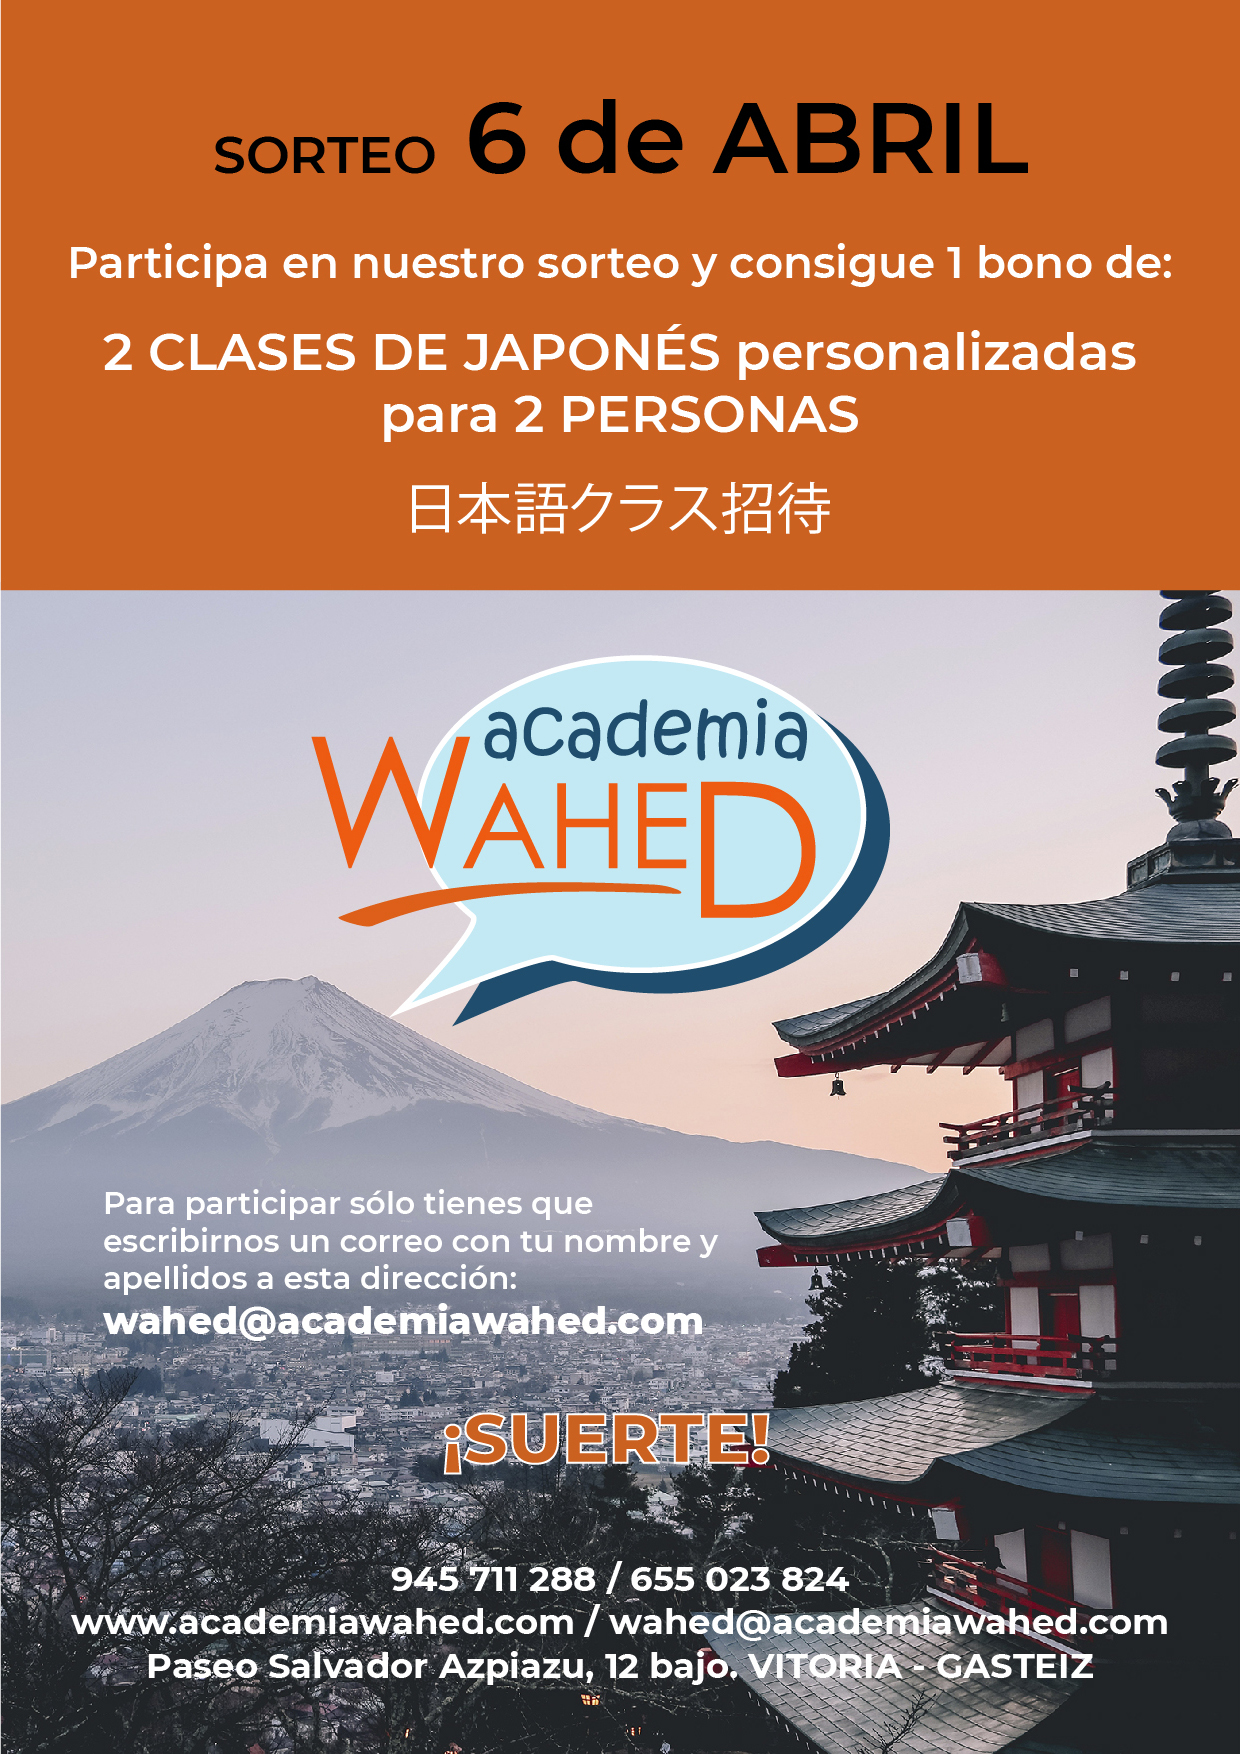 Wahed-cartel sorteo abril 2020-clases ja